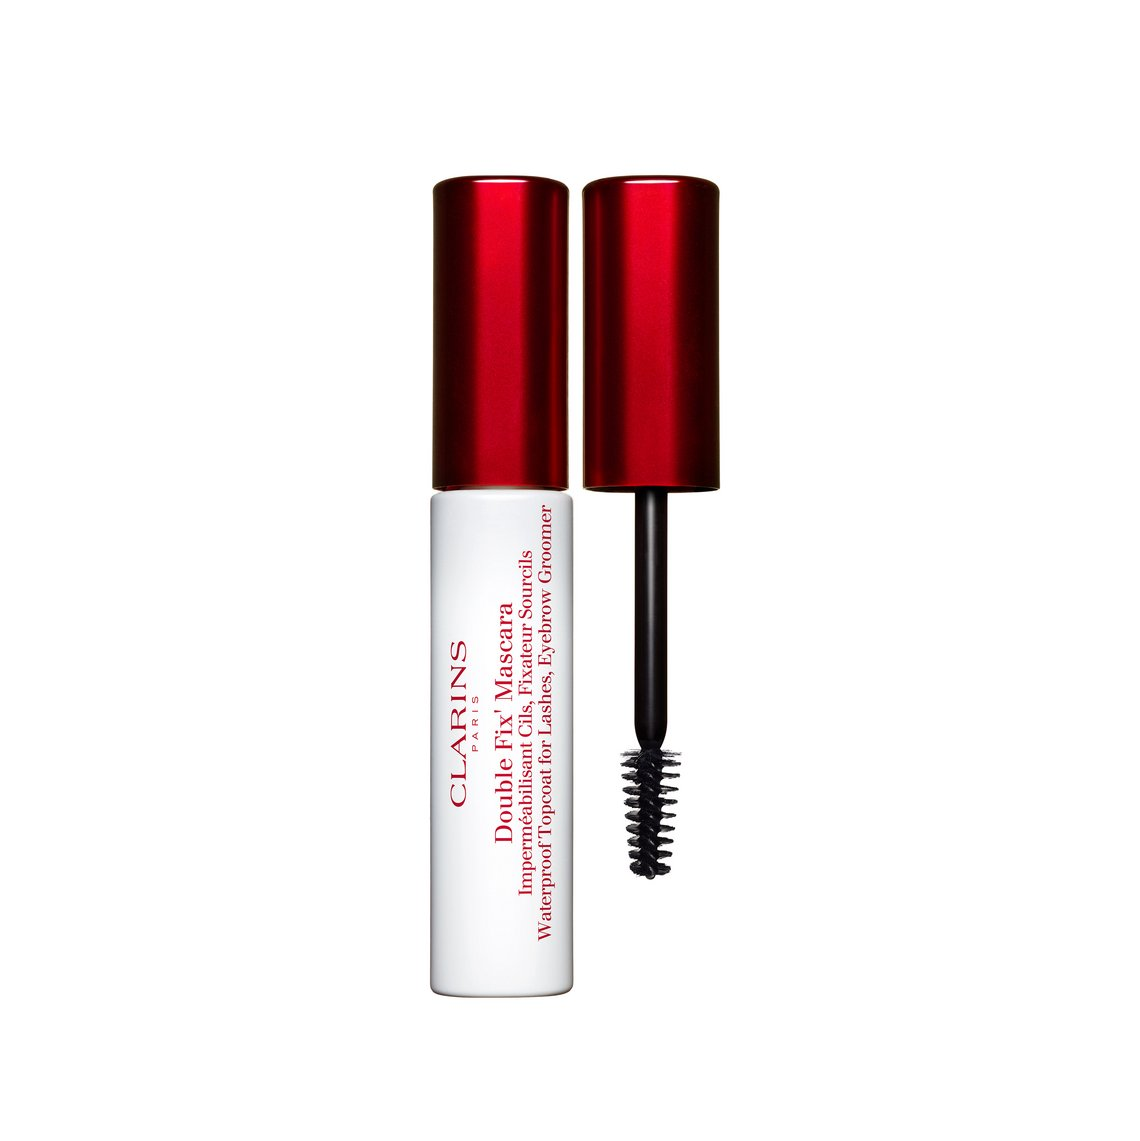 Double Fix' Mascara Waterproof Topcoat von Clarins